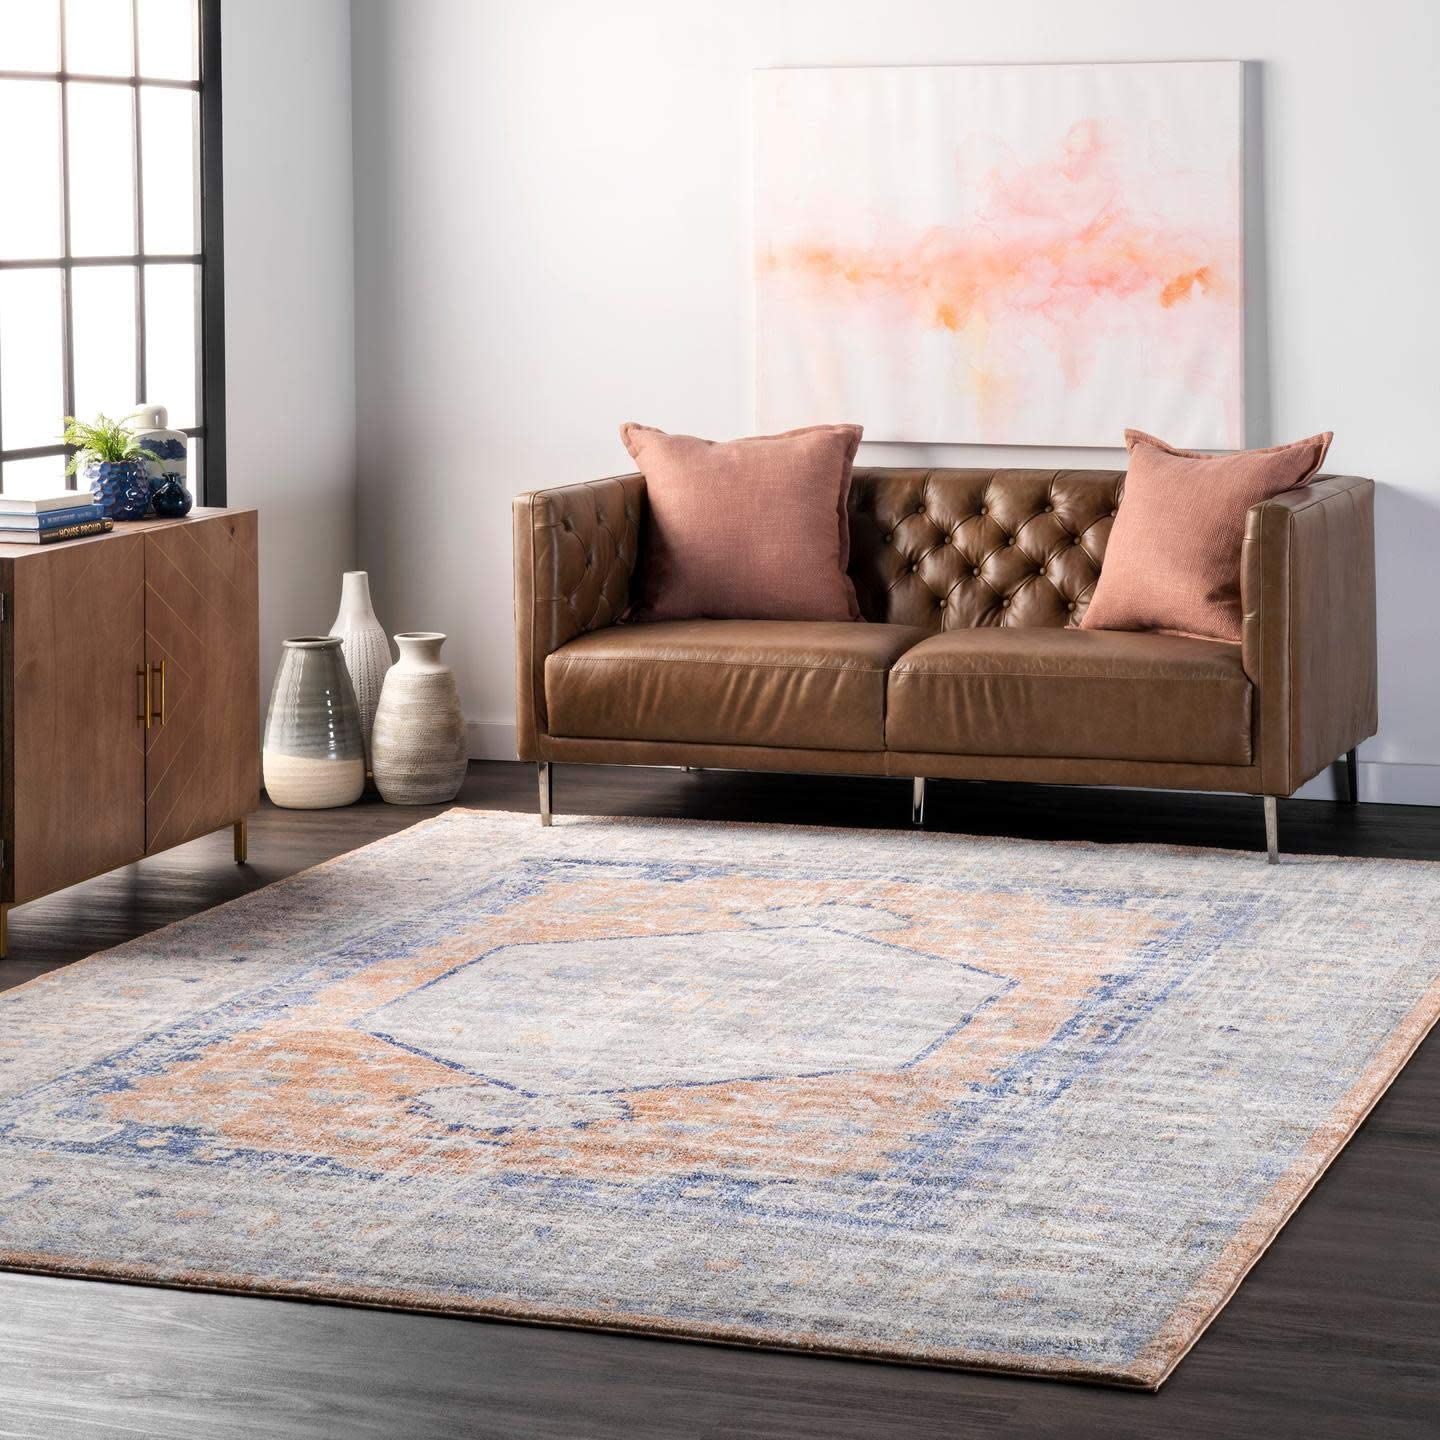 nuLOOM Vintage Jacquie Floral Area Popular shop is the lowest price challenge 6' Round Rug Sale Peach